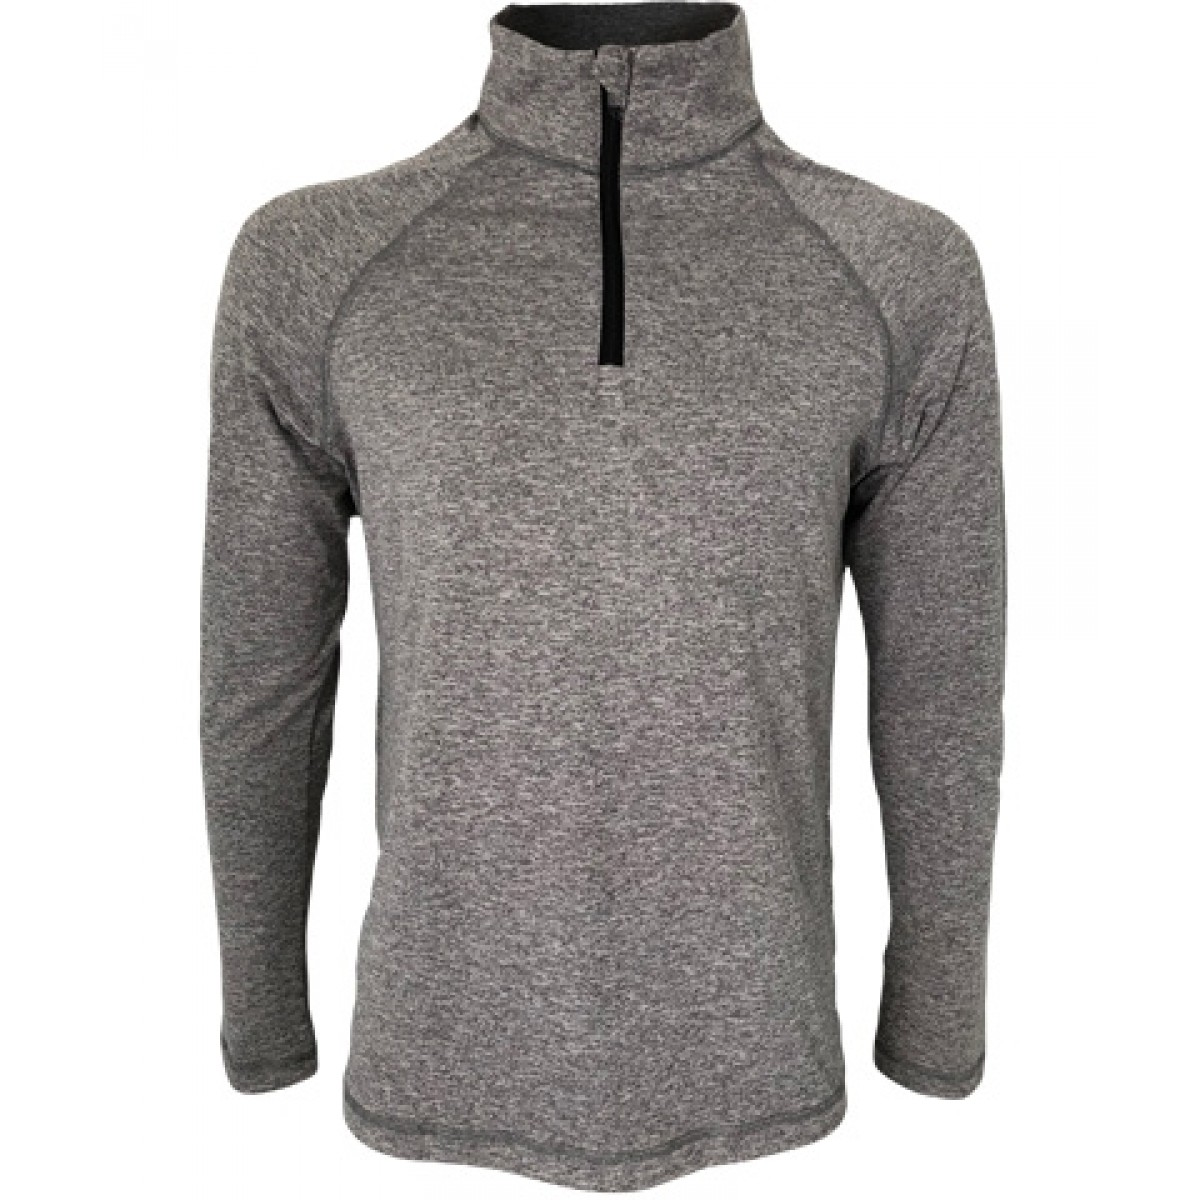 Men's Quarter-Zip Lightweight Pullover-Gray -YL